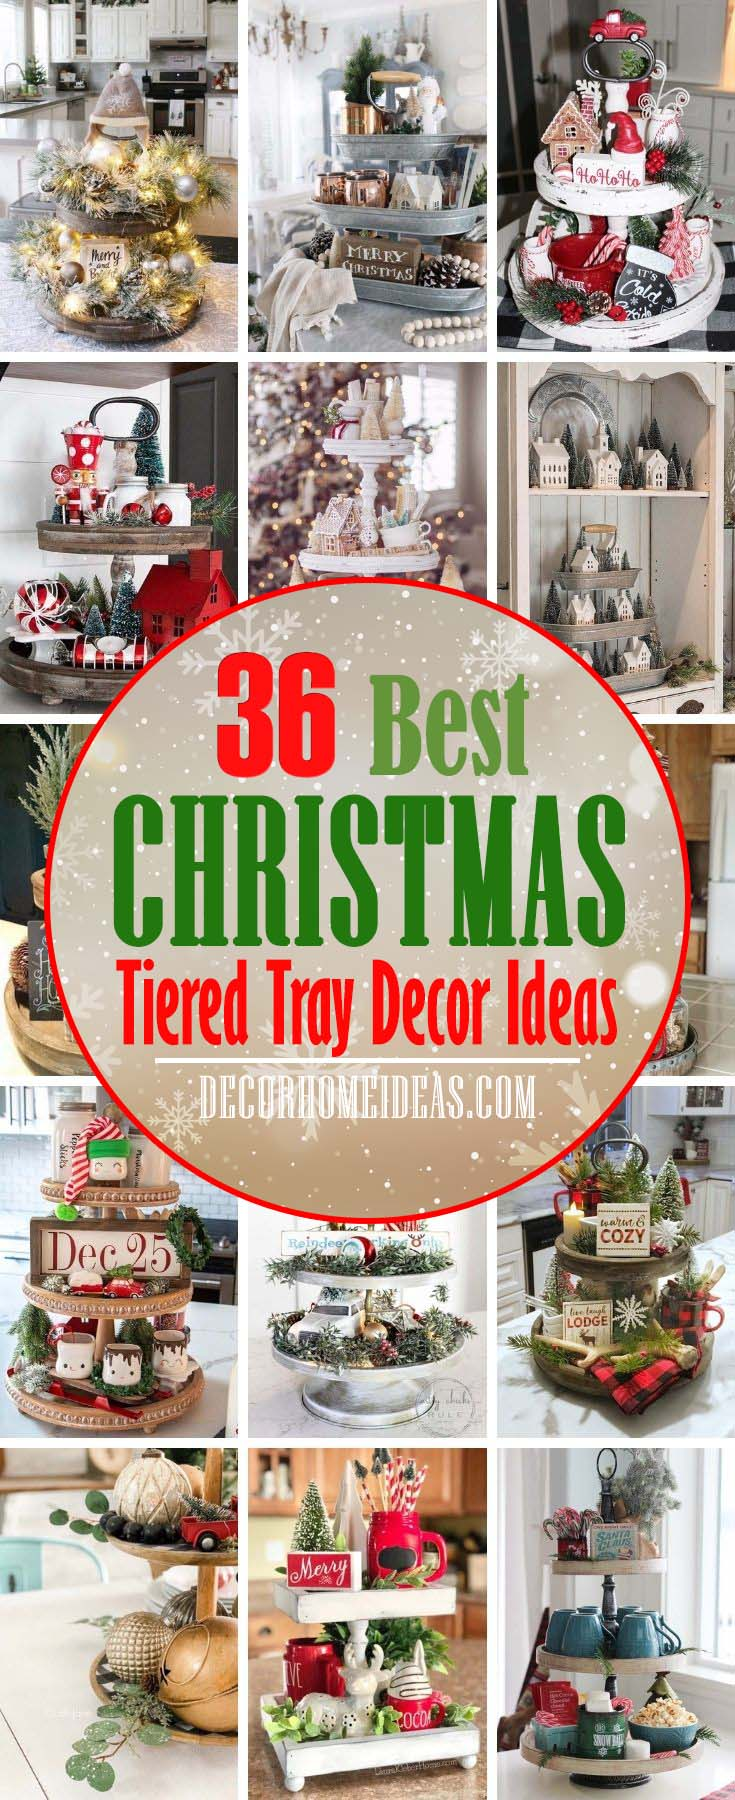 Best Tiered Tray Christmas Decor Ideas. From farmhouse Christmas tiered tray decor ideas to rustic Christmas tiered trays, there are plenty of tiered tray Christmas decor ideas to choose from. #decorhomeideas